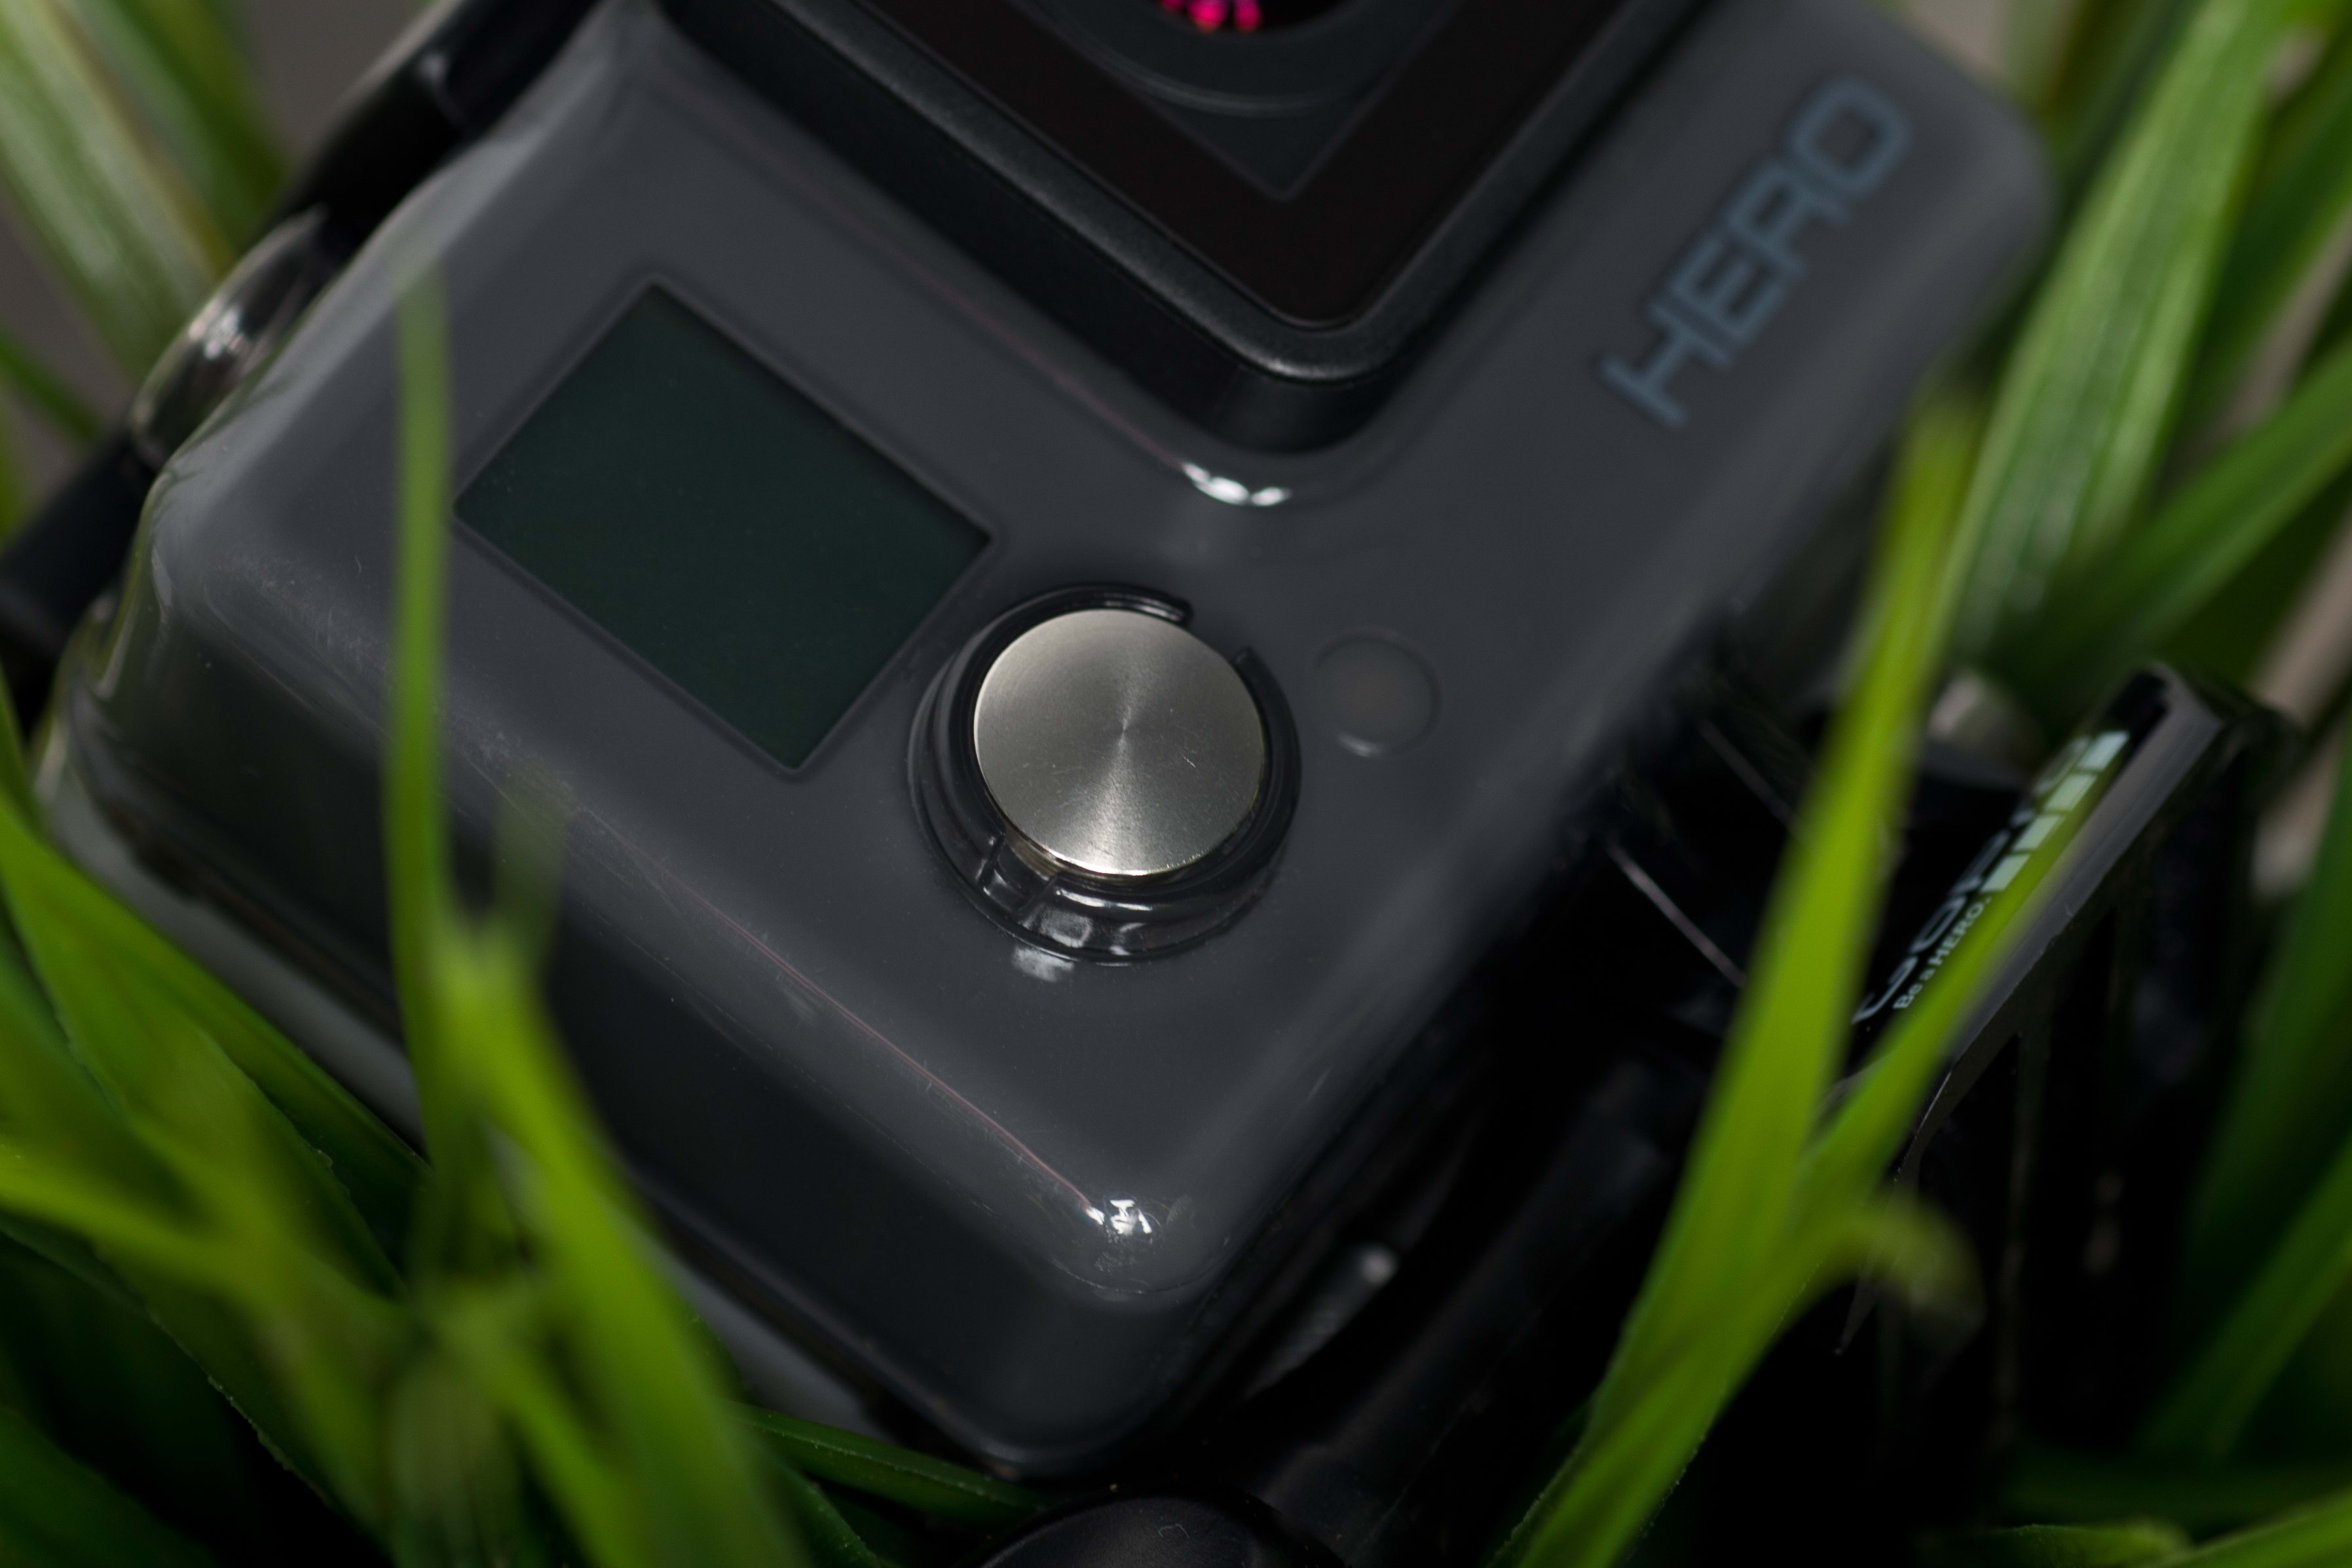 A photograph of the GoPro Hero 2014 edition's record button.